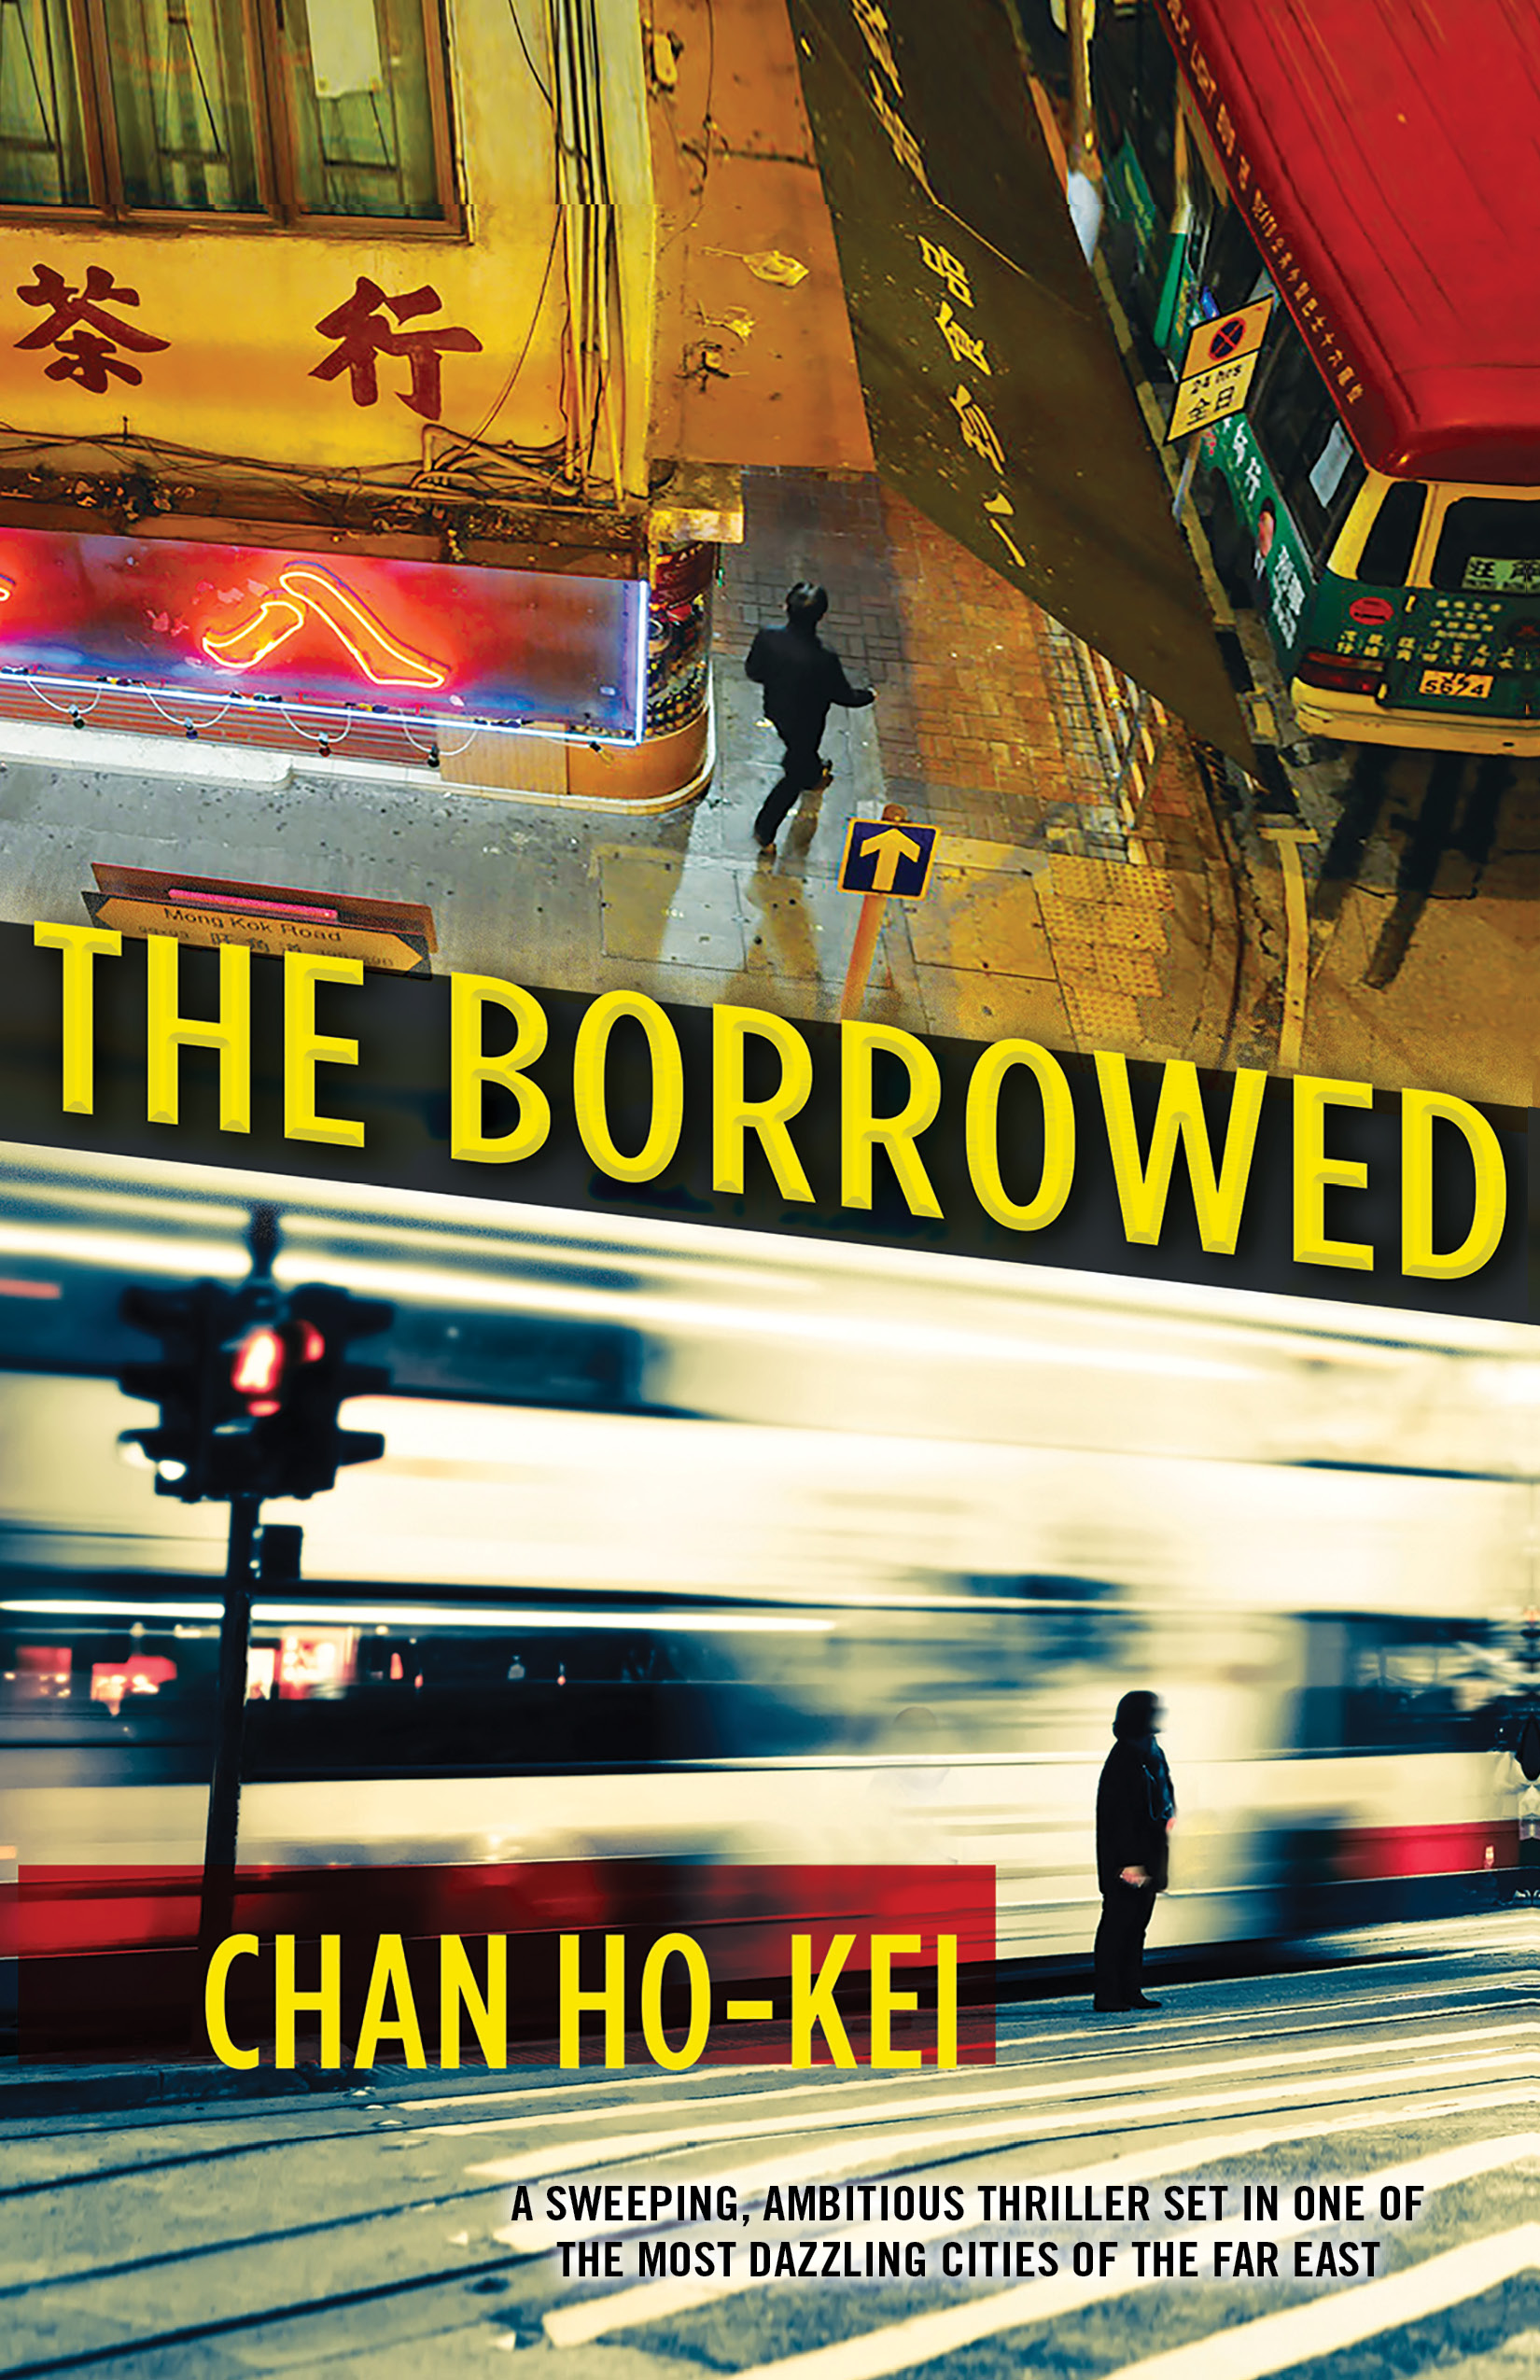 The Borrowed